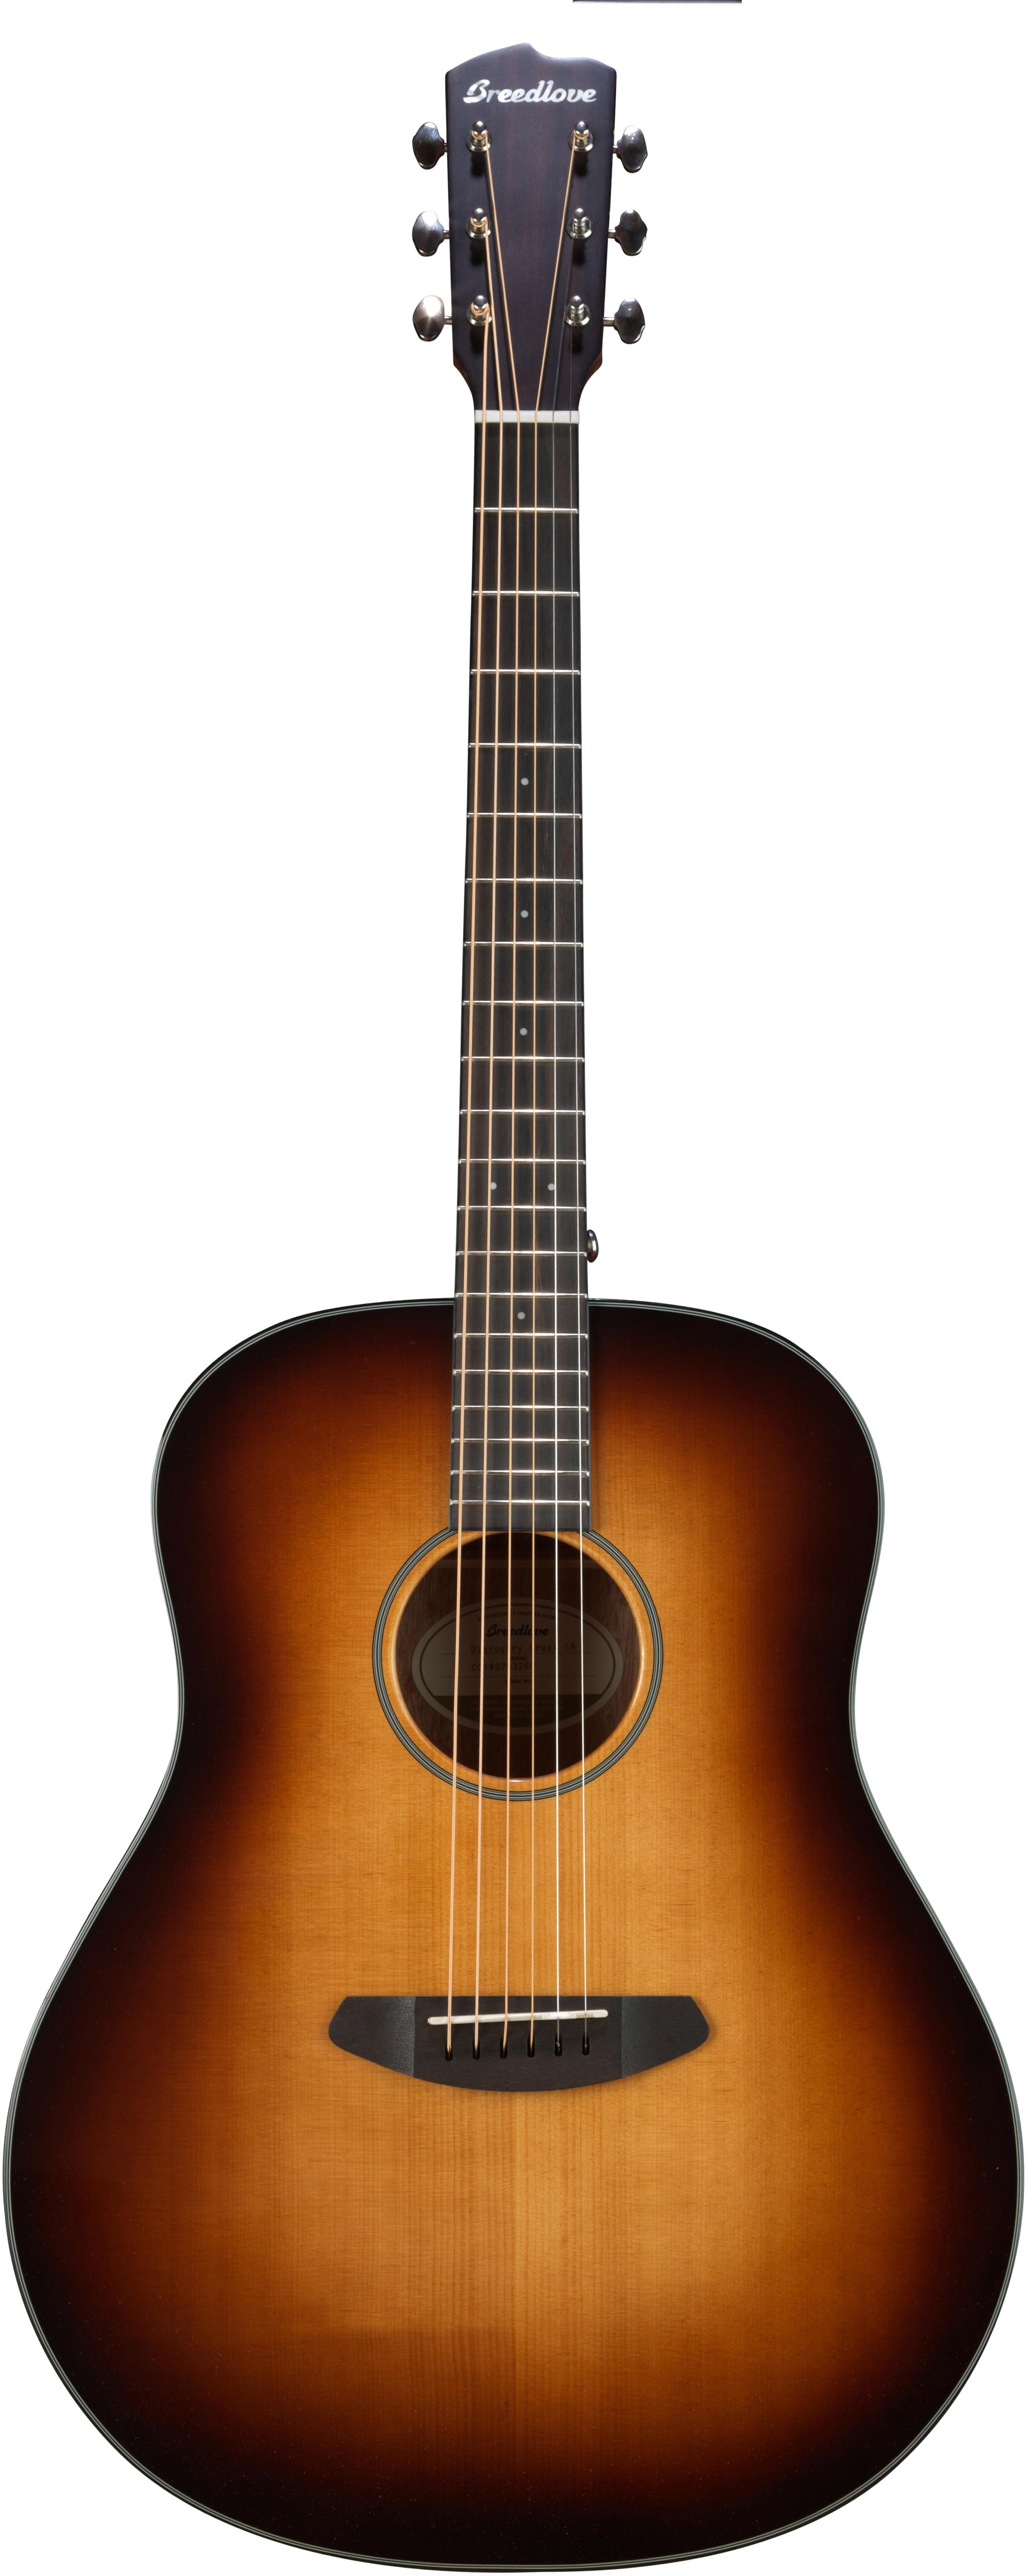 Breedlove Discovery Dreadnought Sunburst